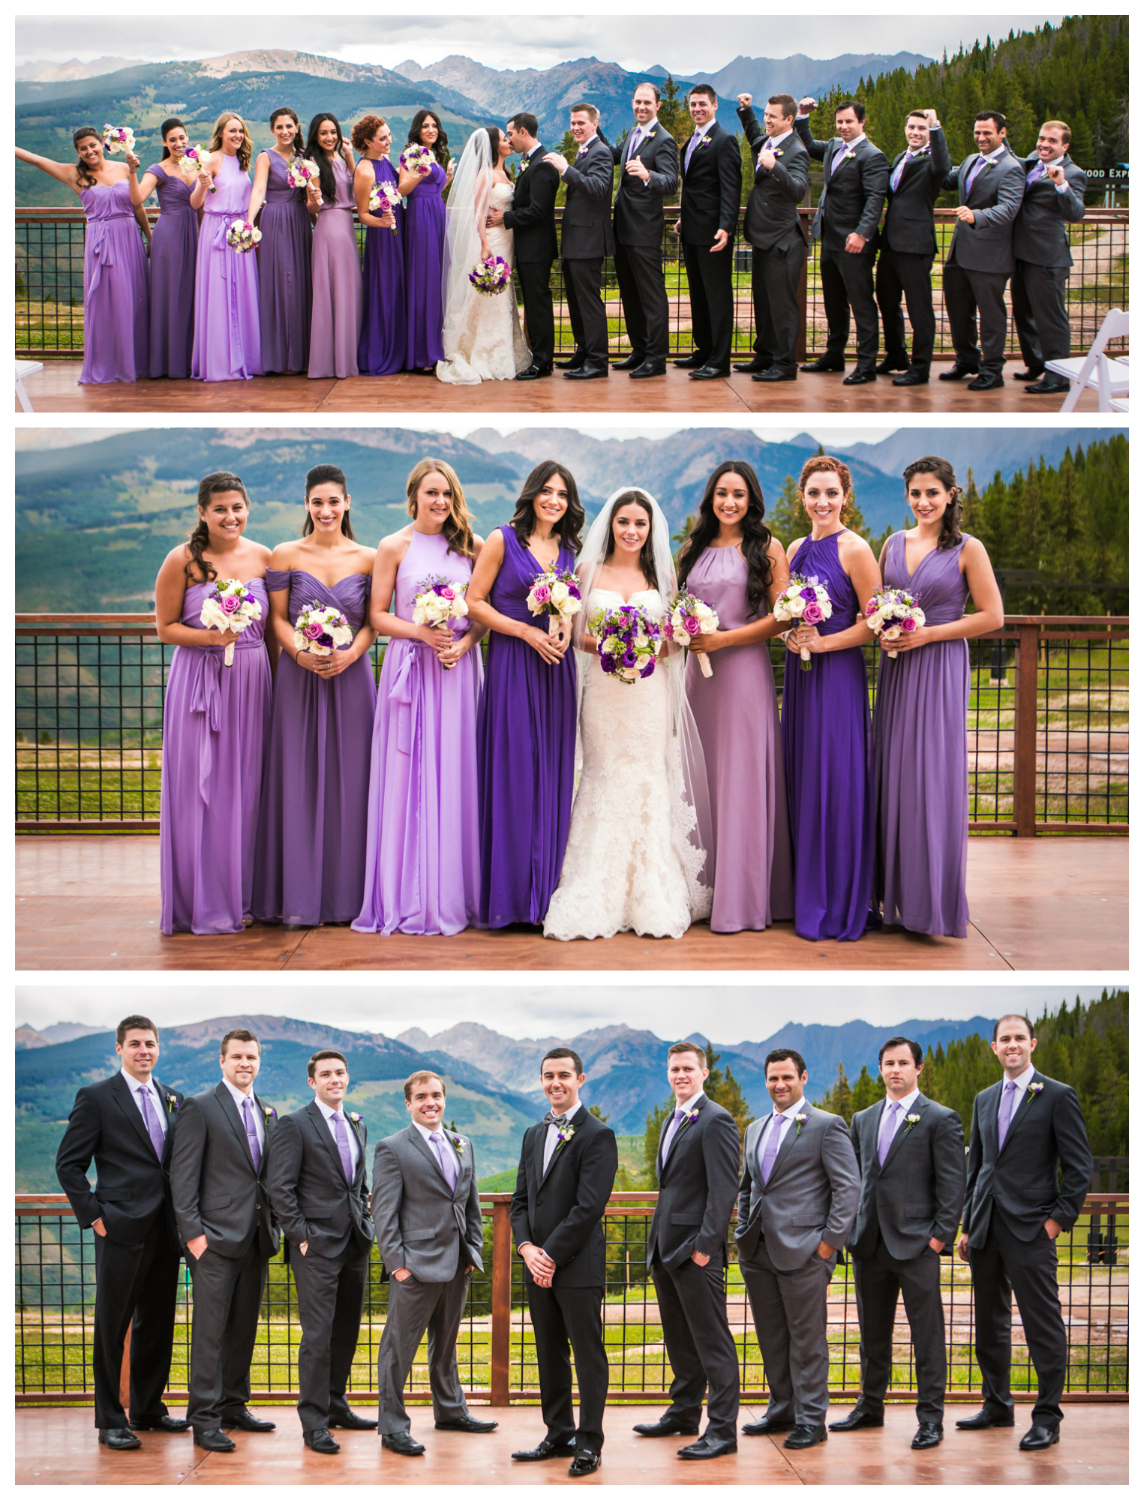 Bridal party. Vail Colorado Wedding photographed by JMGant Photography.